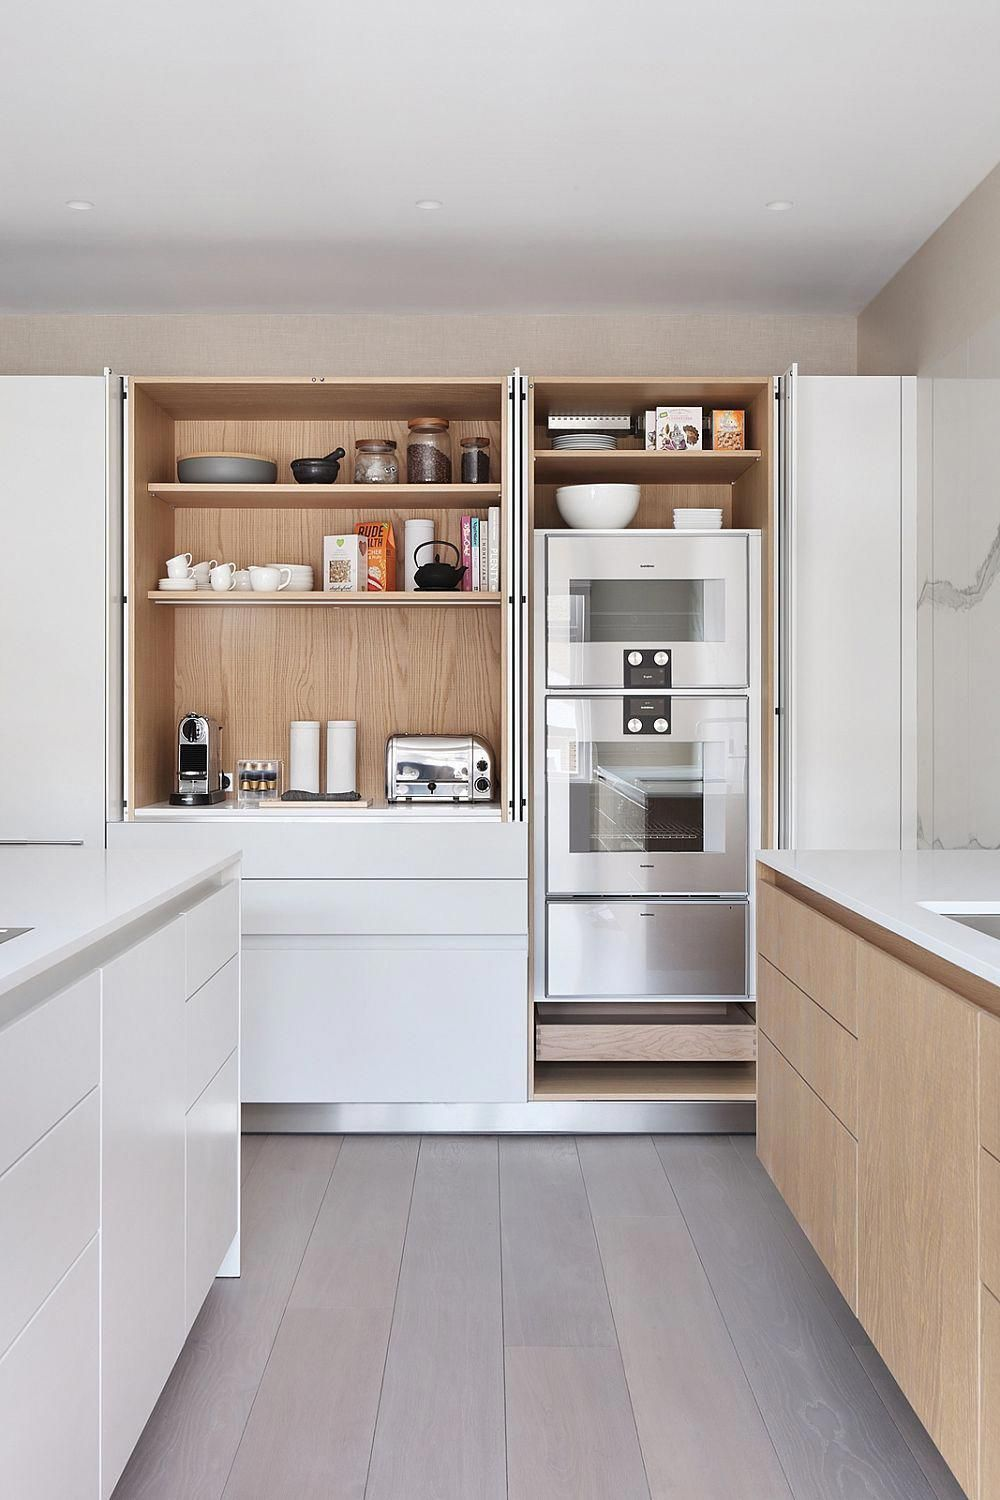 Connected kitchens: when home automation comes into the kitchen in